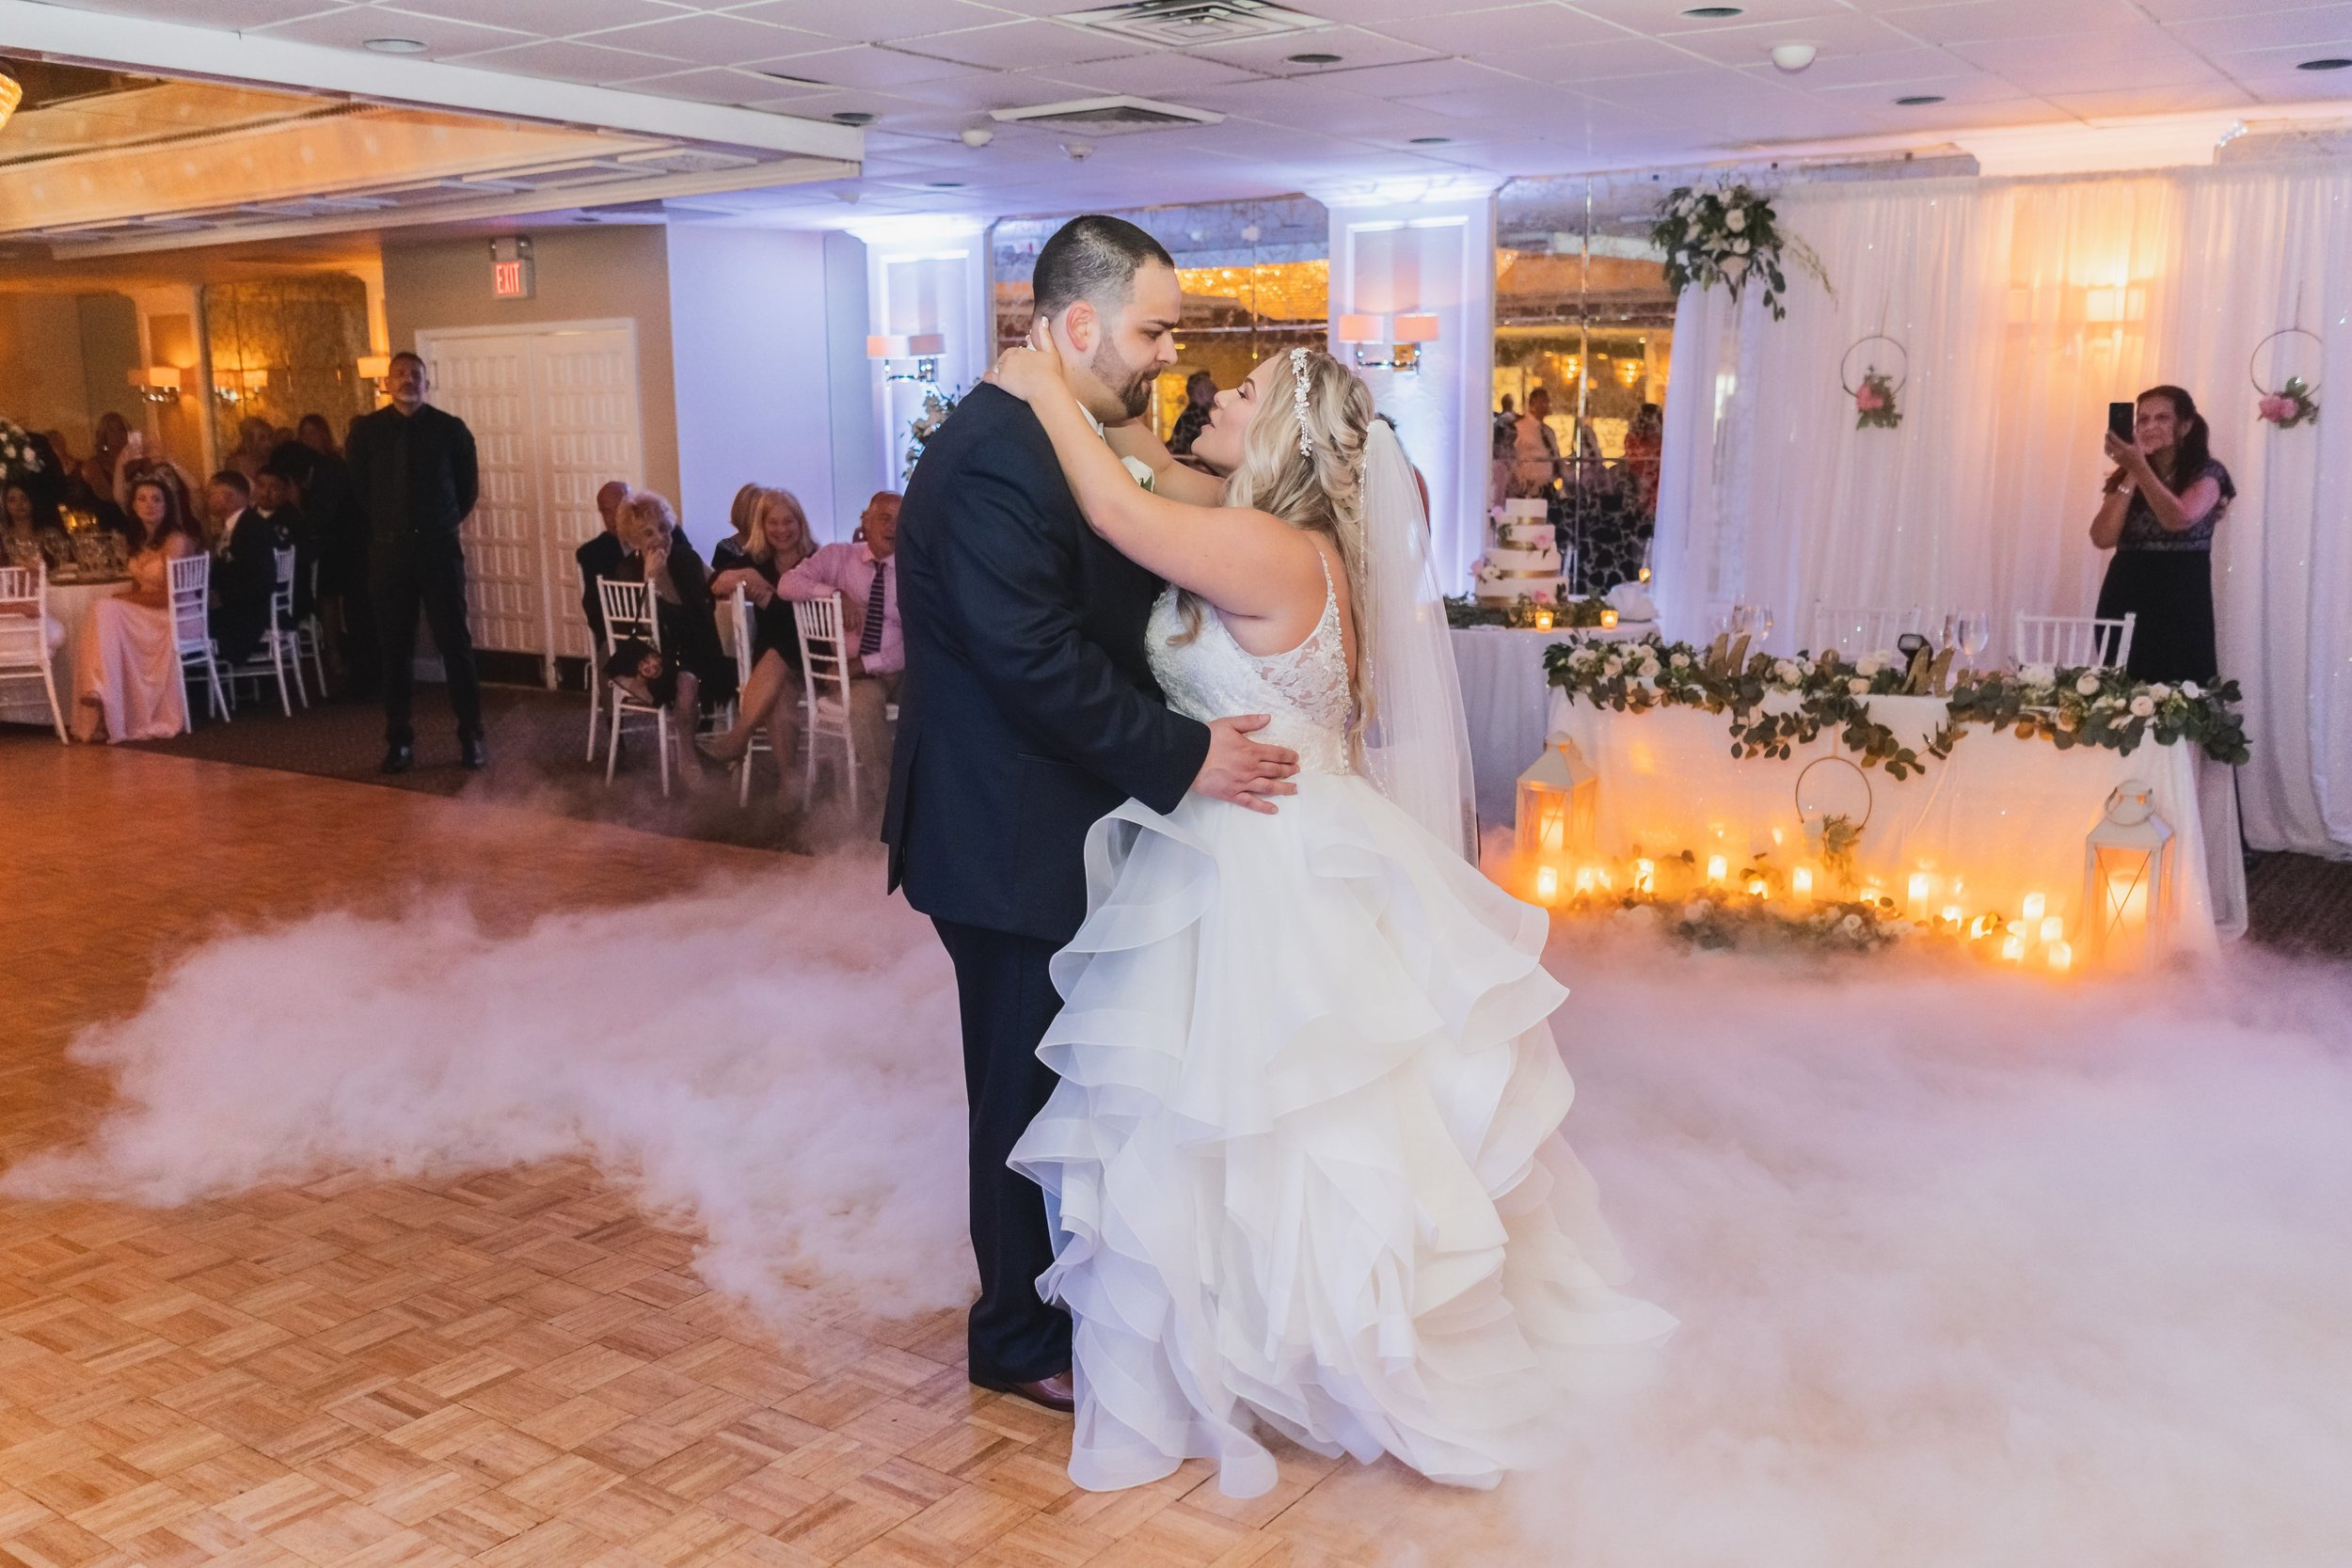 Bride and groom sharing the first dance on a fog filled venue dance floor.